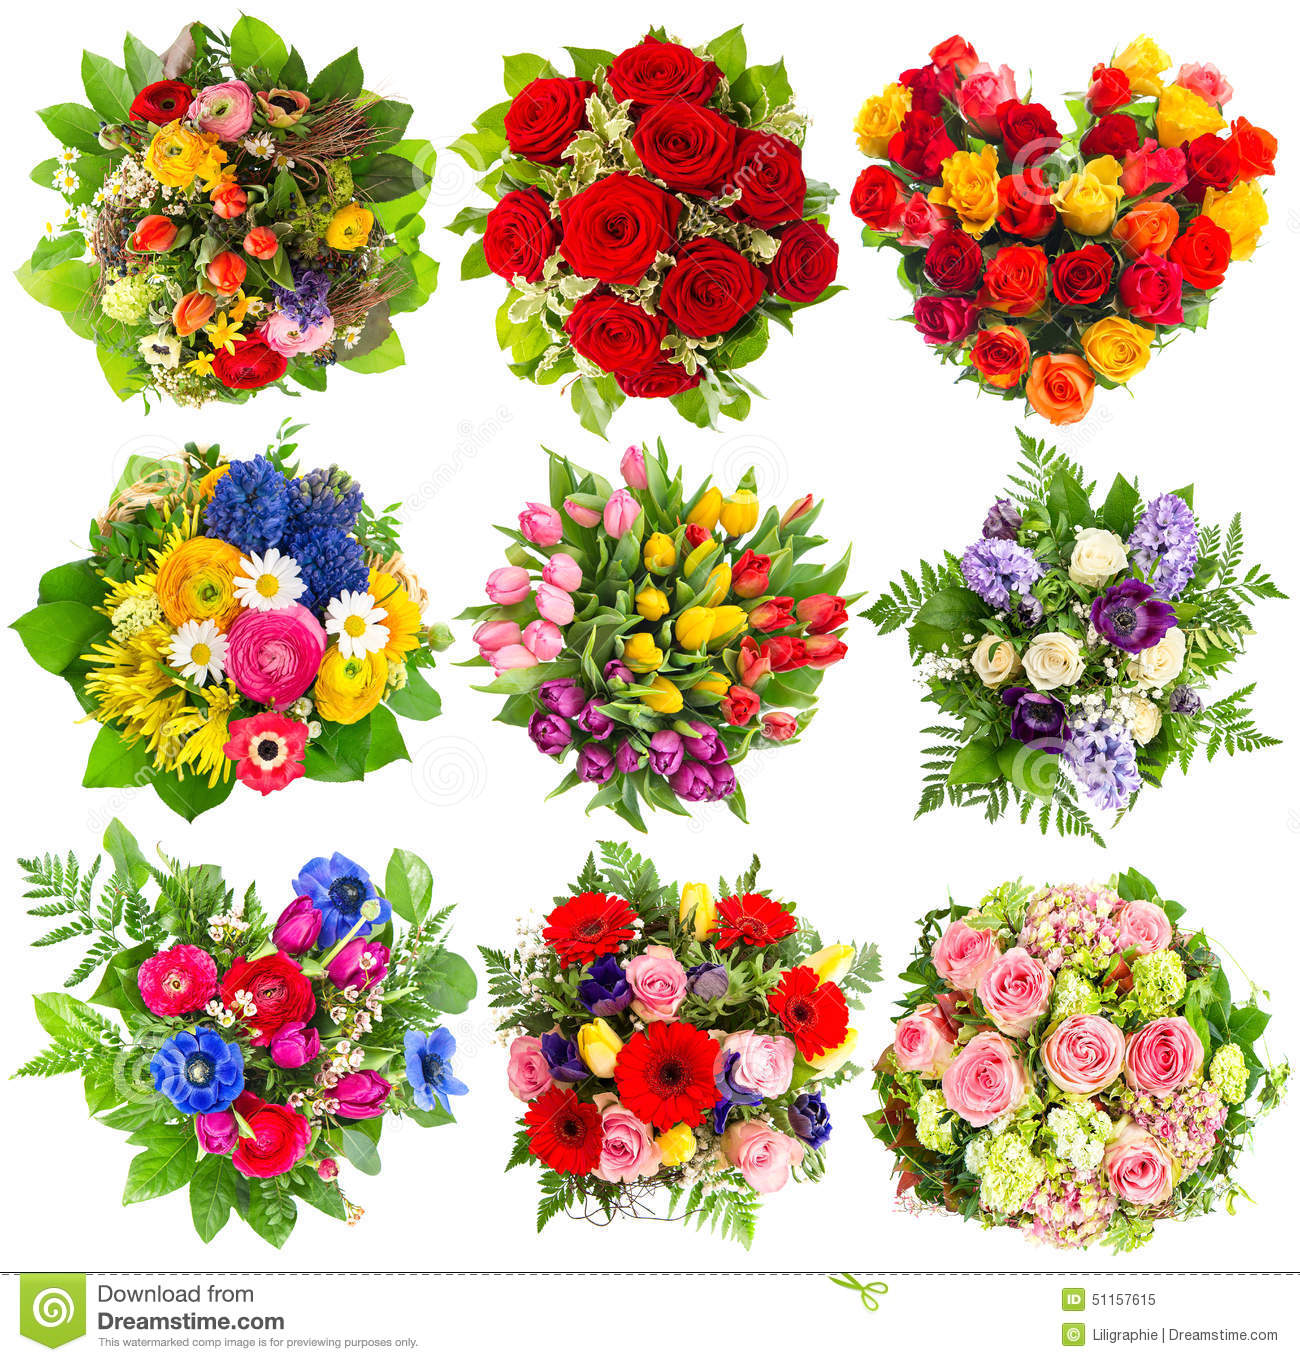 Bouquets Of Colorful Flowers For Birthday Wedding Easter Holi